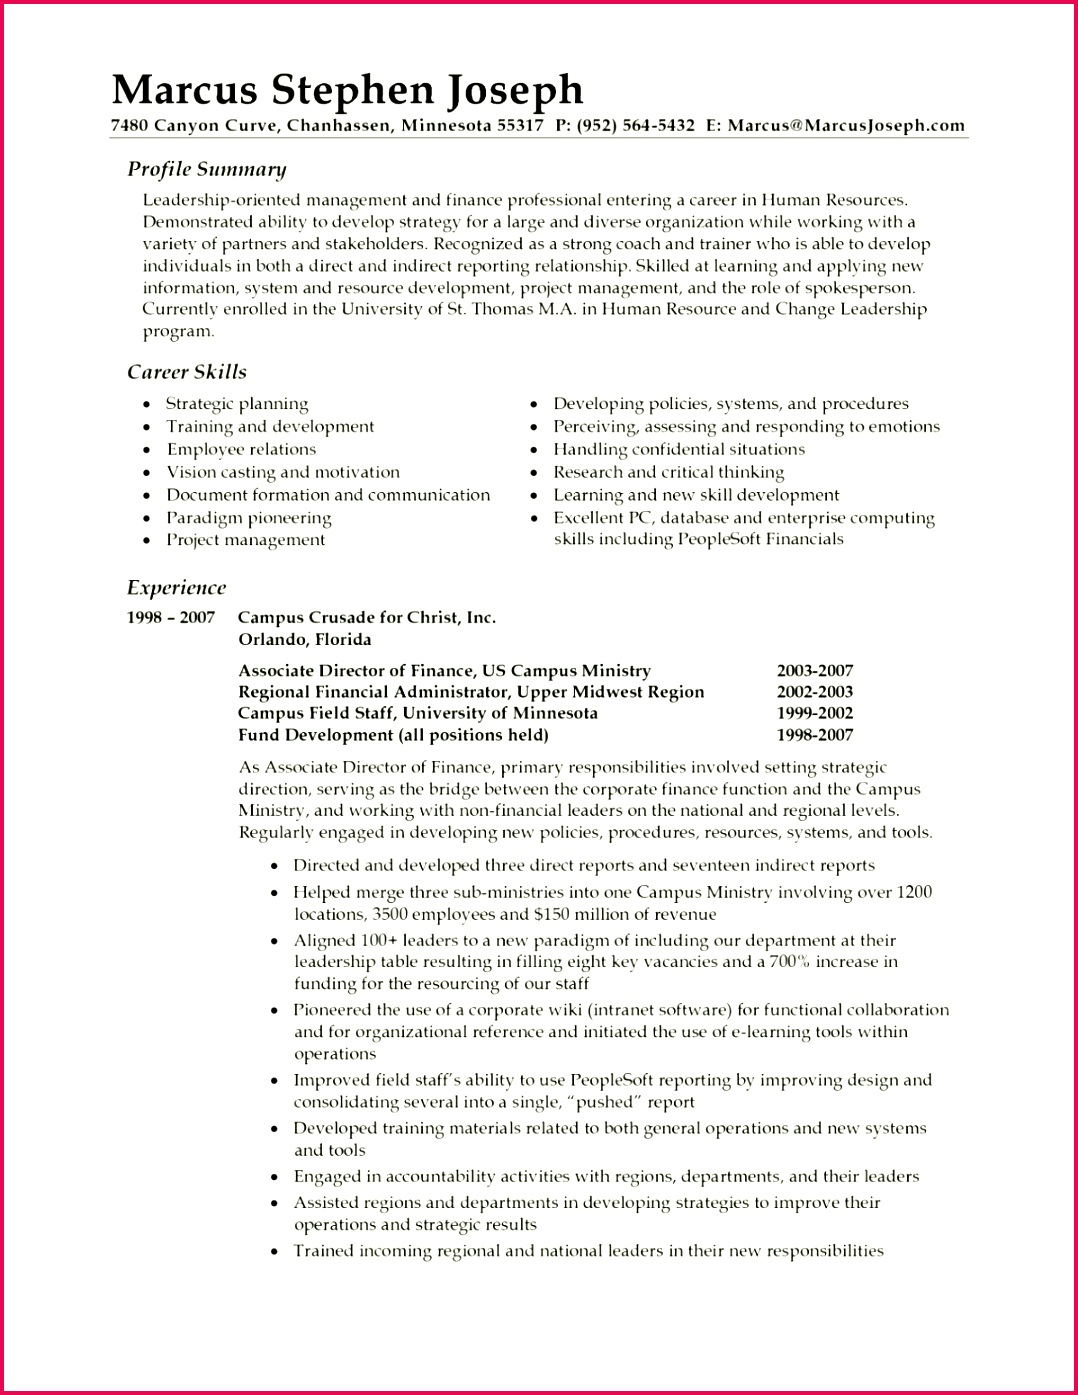 Sample Resume Summary Ministry Resume format New Uline Templates Fresh Uline Templates 0d dyBfh